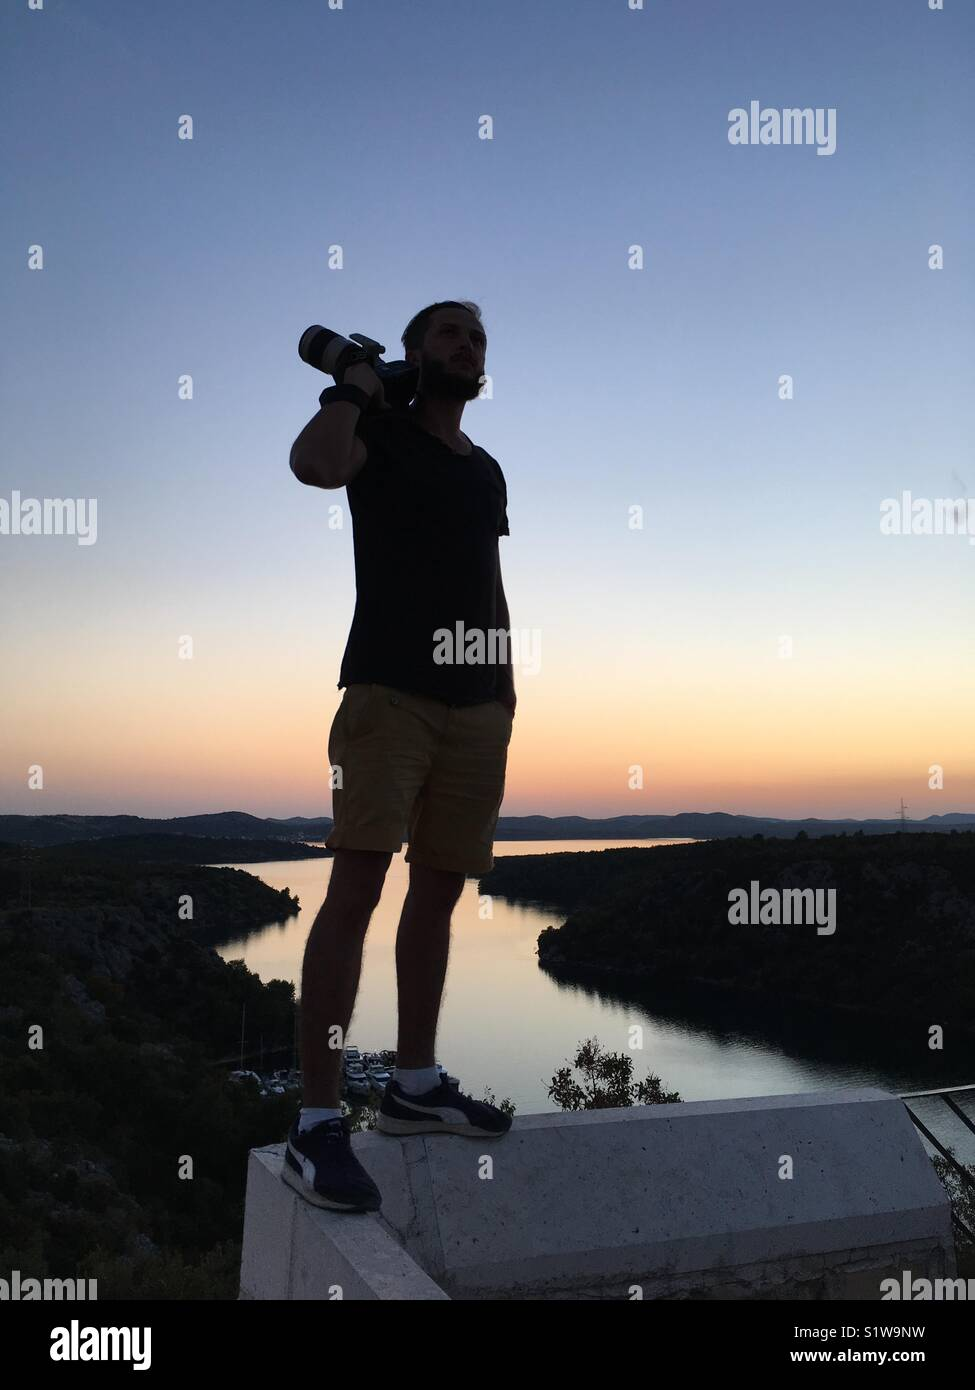 Camera Man - Stock Image